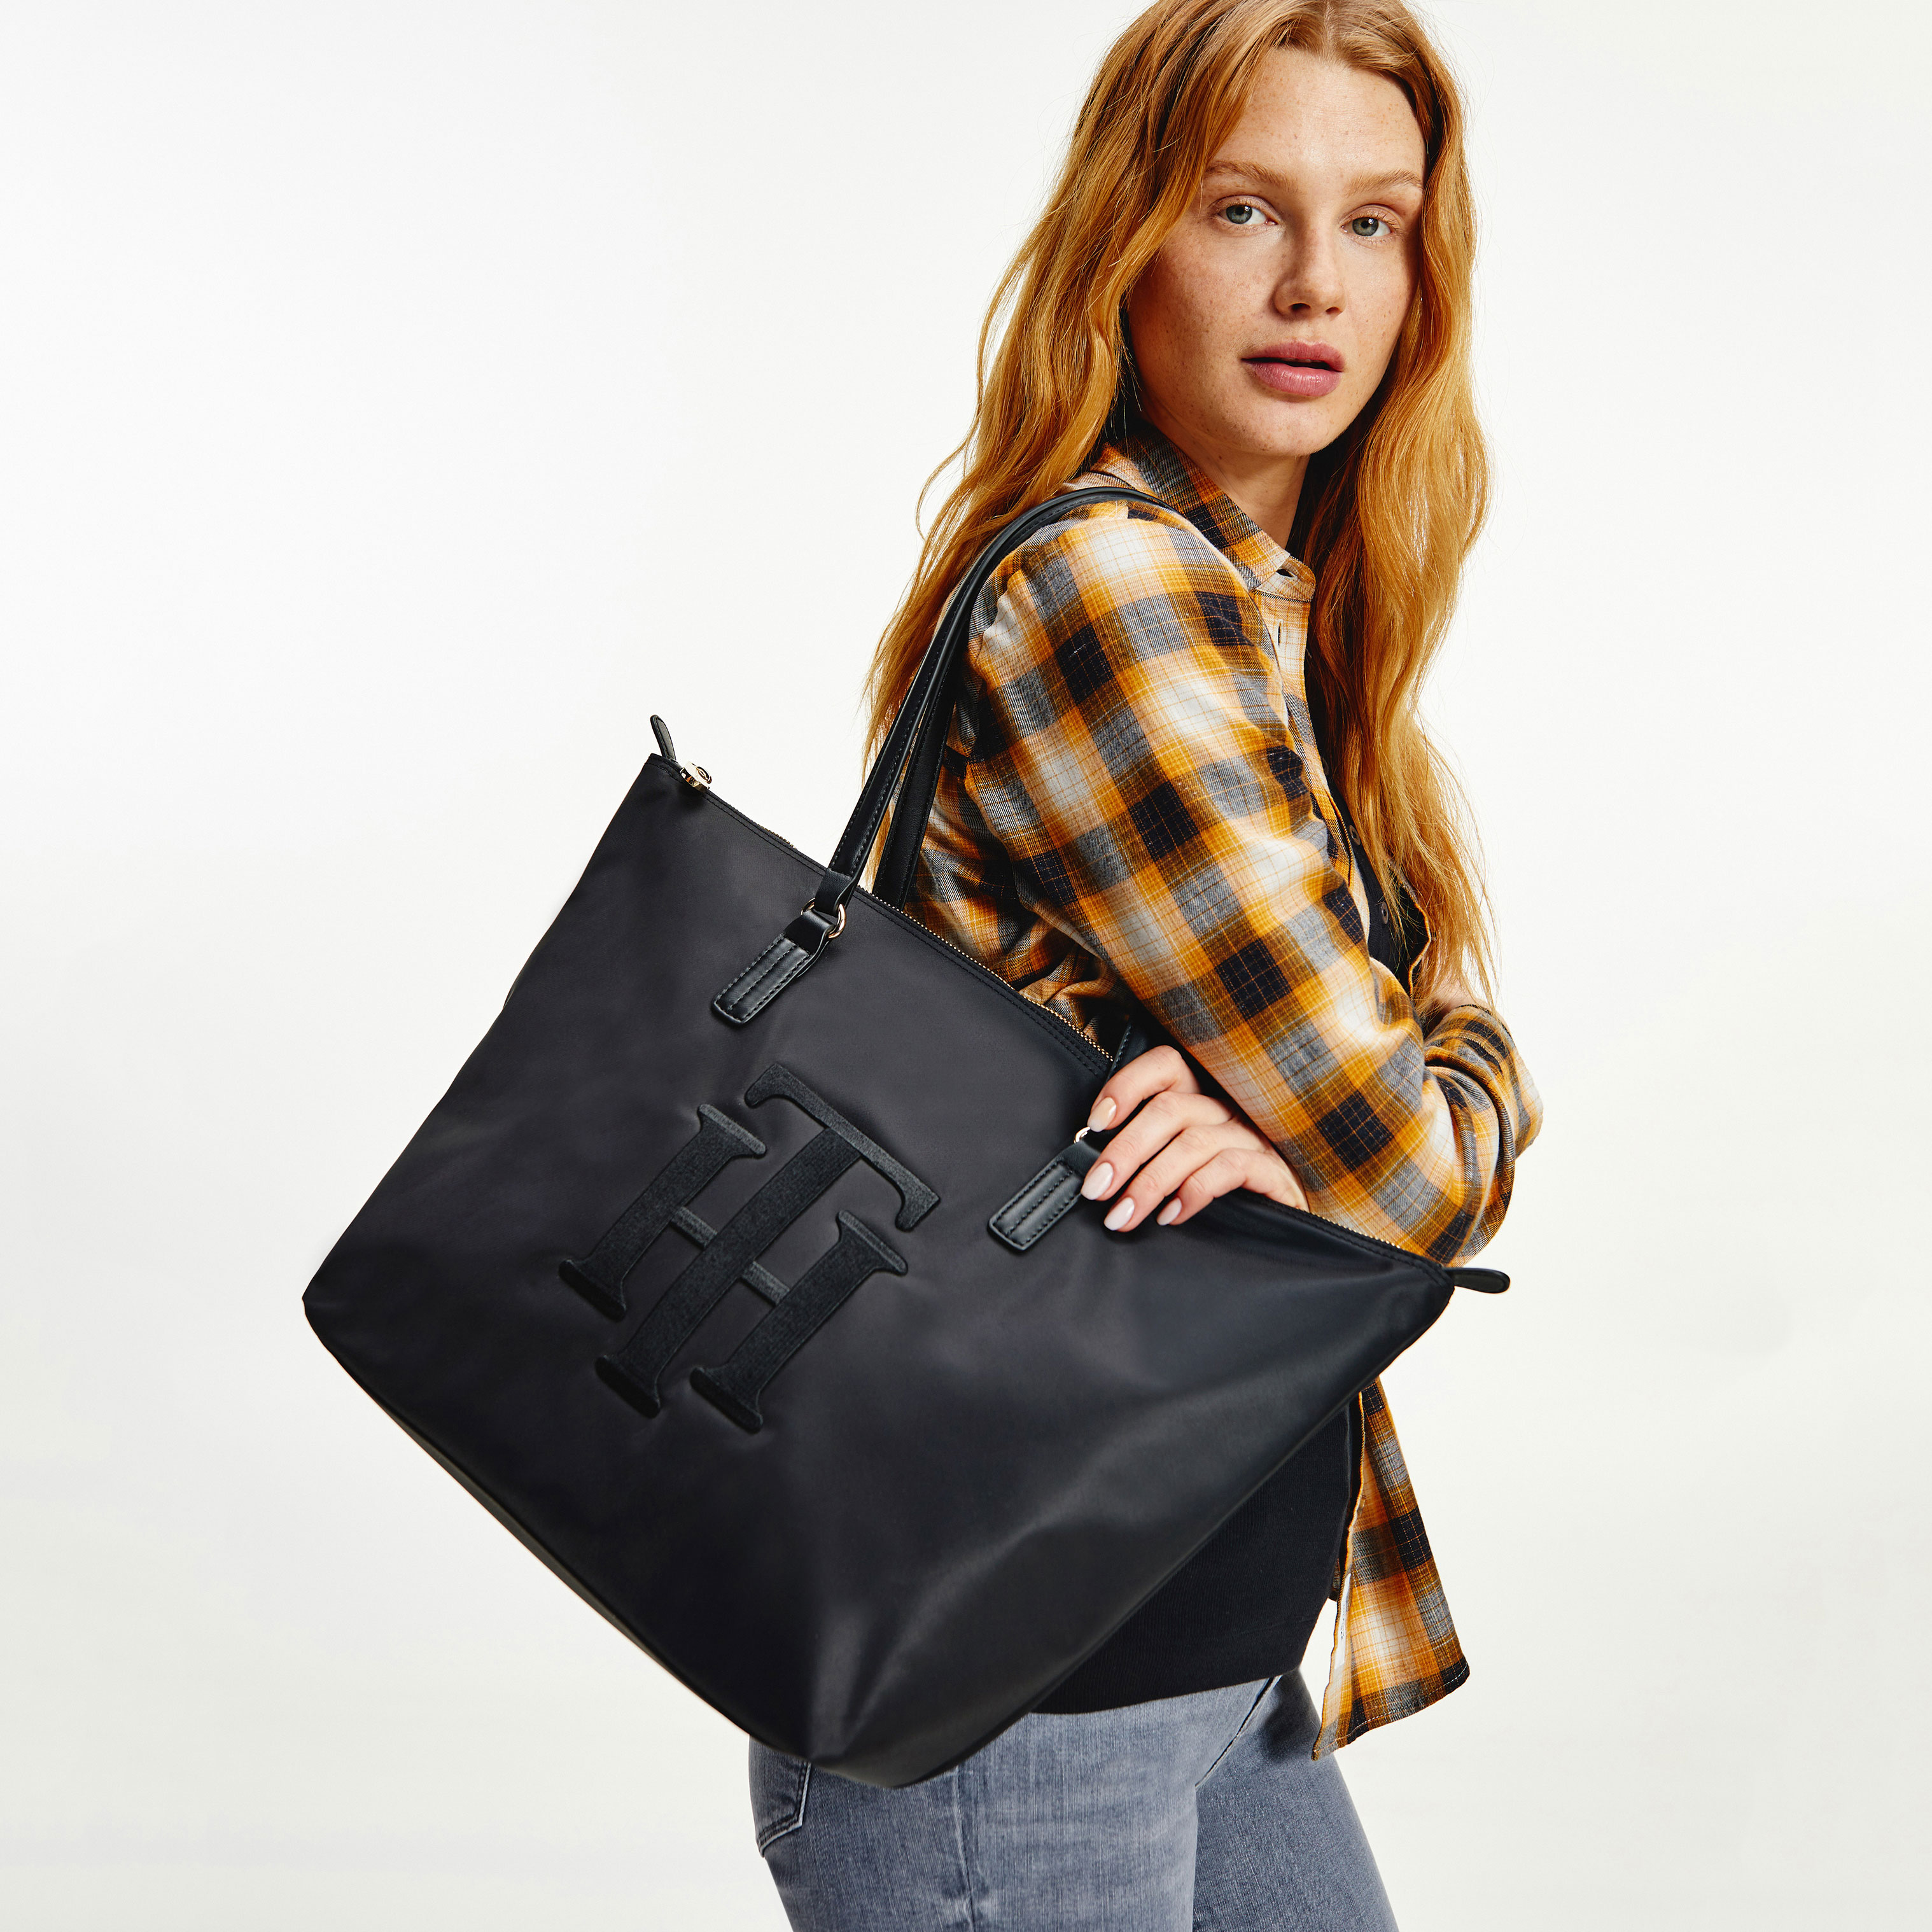 TOMMY HILFIGER Marroquinería Bolso Poppy Tote Th AW0AW10465-BDS